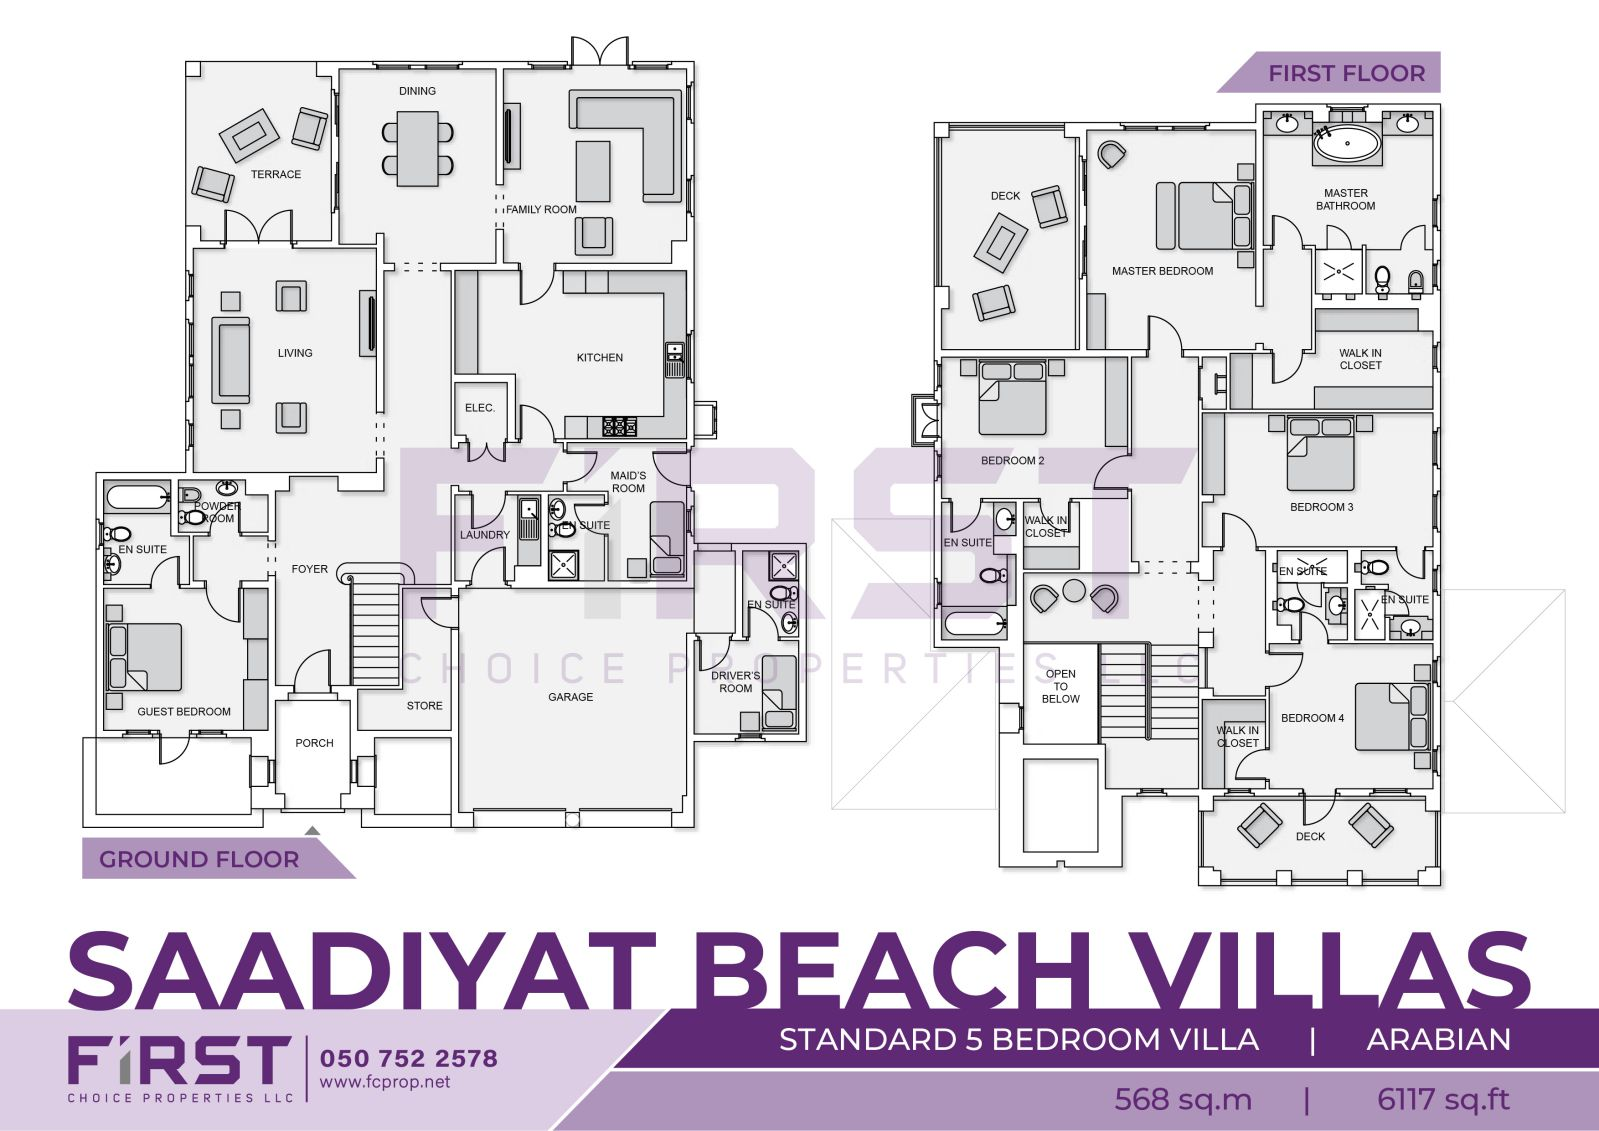 Saadiyat Beach Villas Saadiyat Island Arabian Village Standard 5 Bedroom VIlla 568 sq.m 6117 sq.ft .jpg